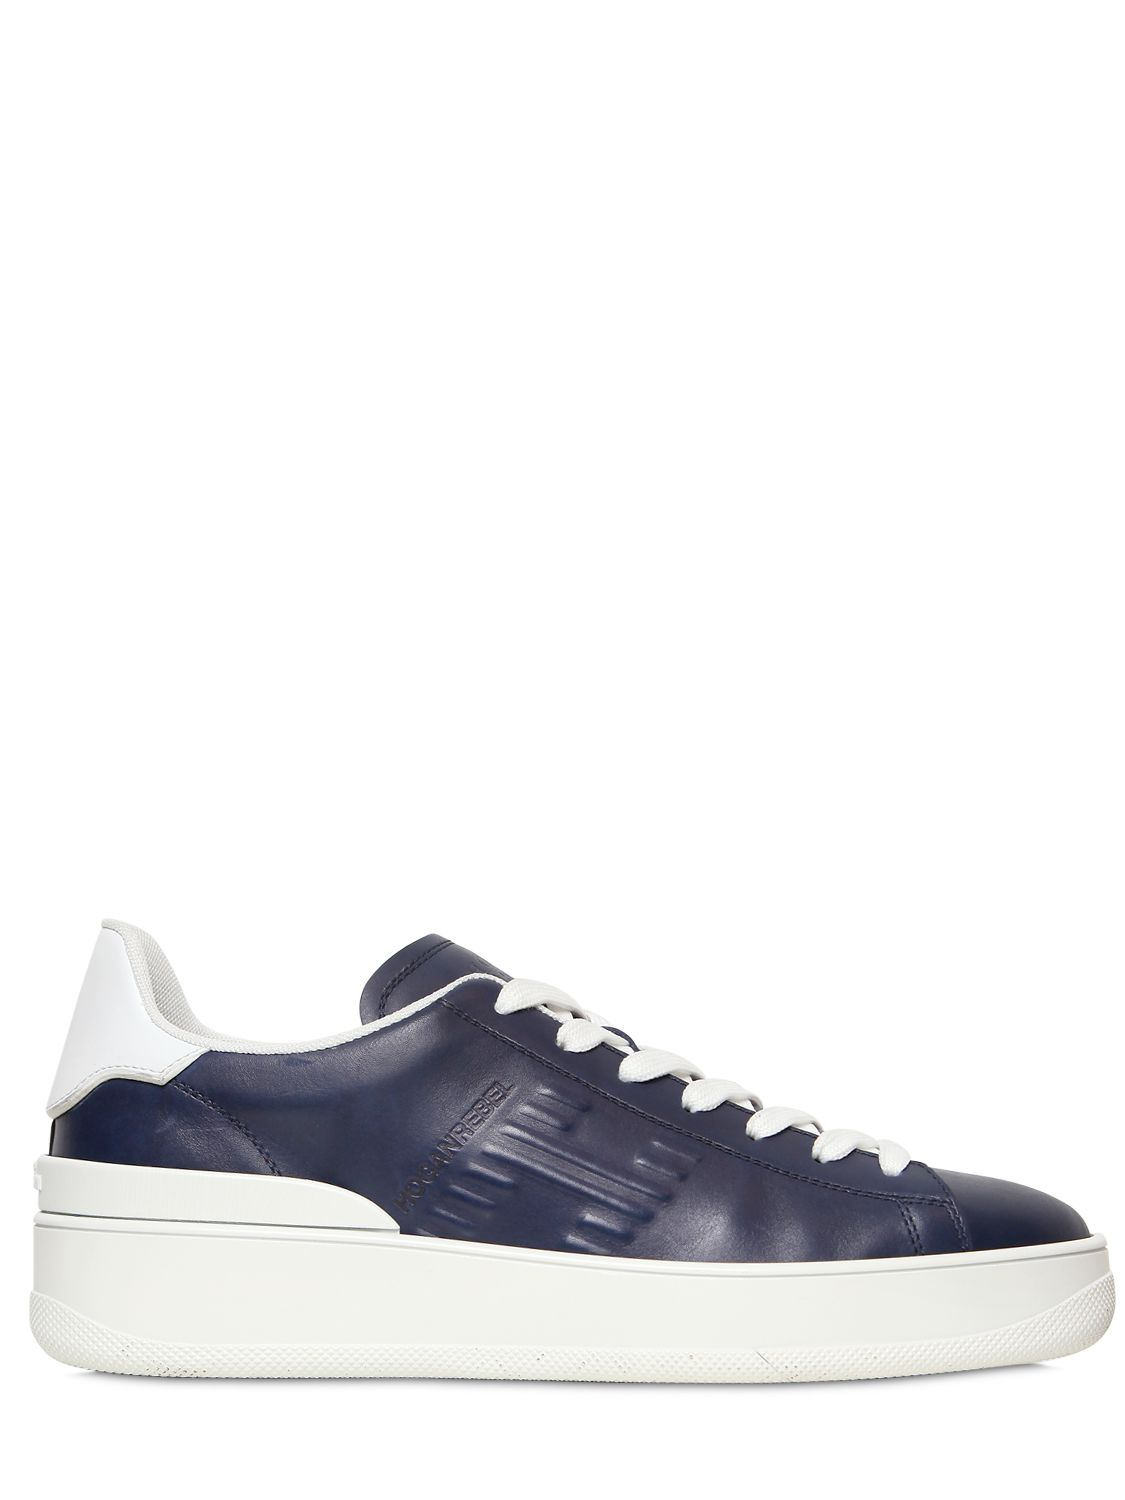 Hogan Rebel Hogan Rebel Pure 3986 Leather Sneakers In Blue For Men Lyst